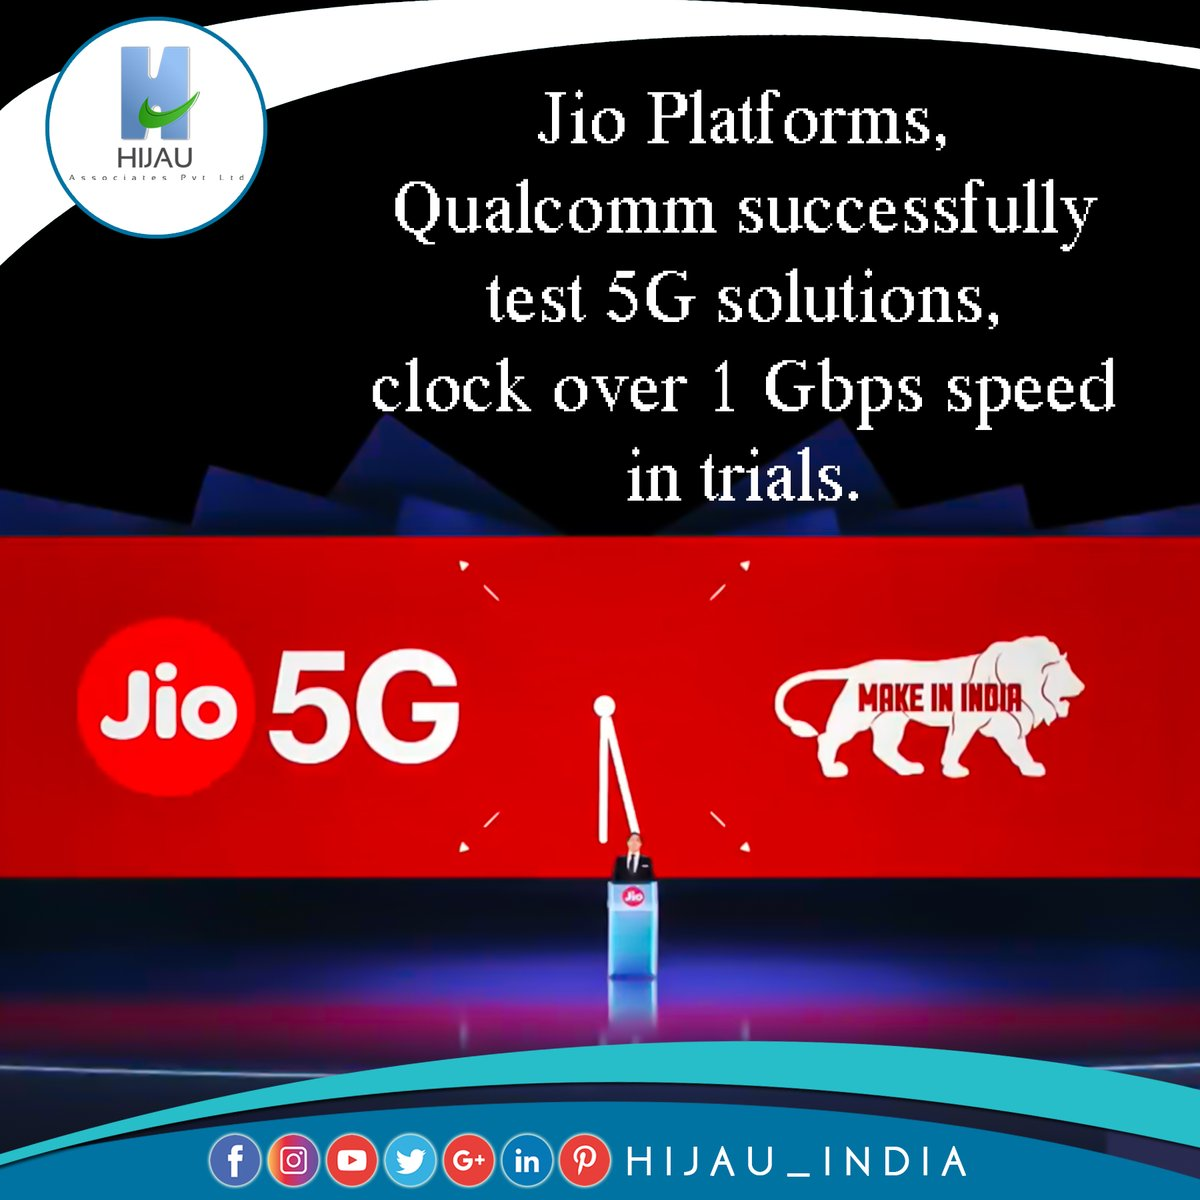 Jio Platforms, Qualcomm successfully test 5G solutions, clock over 1 Gbps speed in trials  #hijauindia #businessconsultant #businessideas #makeinindia #businessopportunities #newbusiness #india #businessnews #businessnewsupdates #startups #fdi #investindia #services  @reliancejio https://t.co/K4rduZXDeR